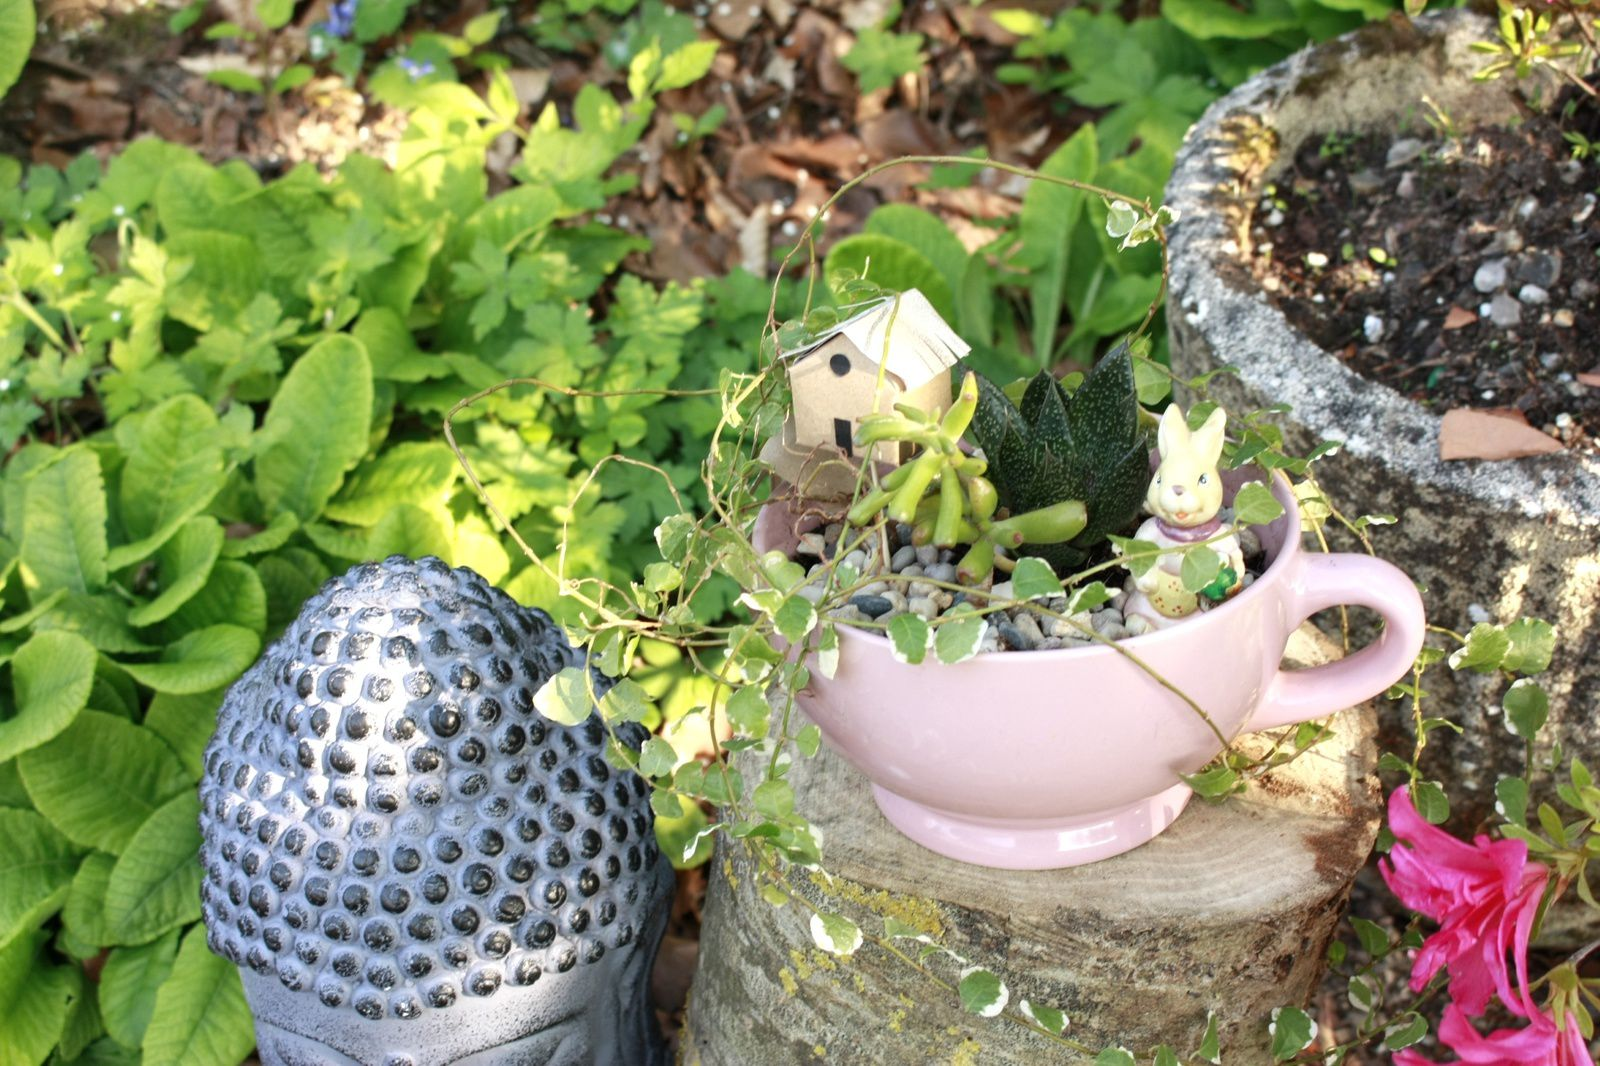 Composer un mini jardin le DIY  pour green addict !!